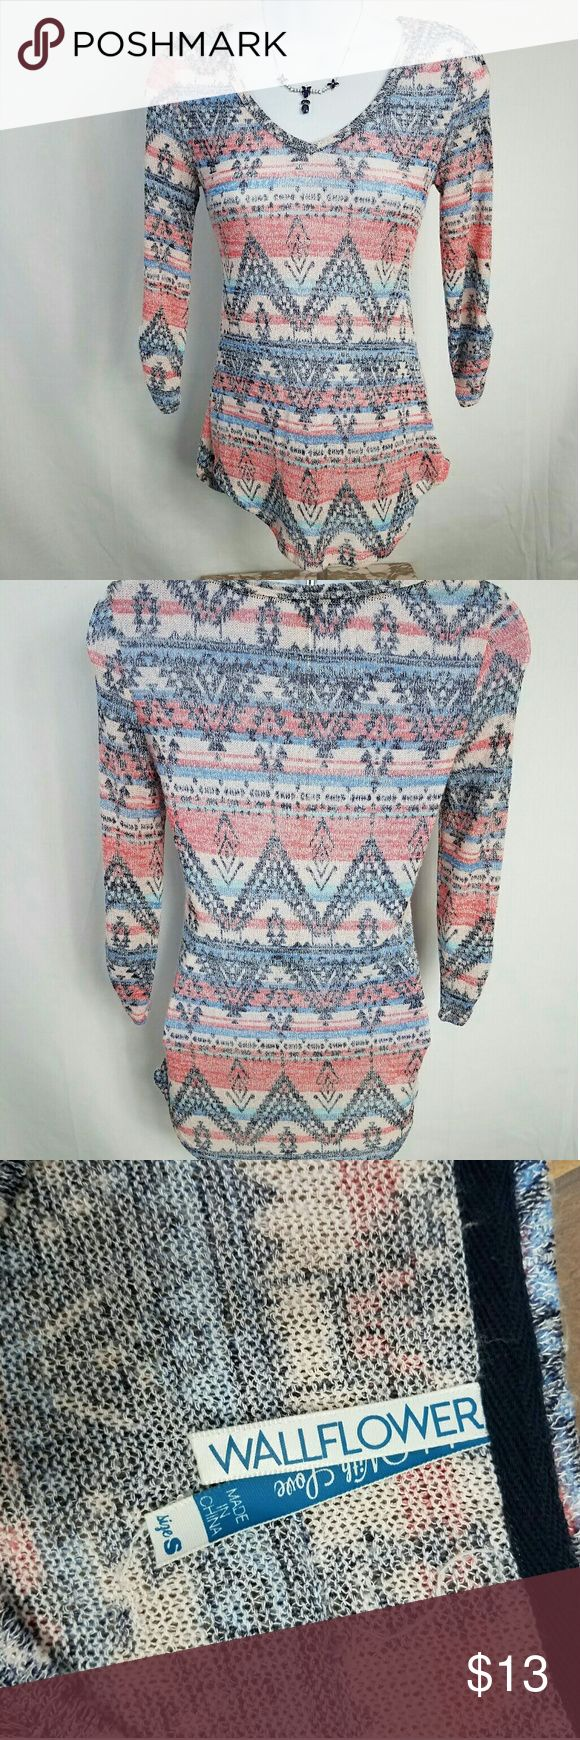 Wallflower Aztec Knit Long Sleeve Scoop Neck Top S Great Boho Style! Good Used condition Wallflower Tops Tees - Long Sleeve